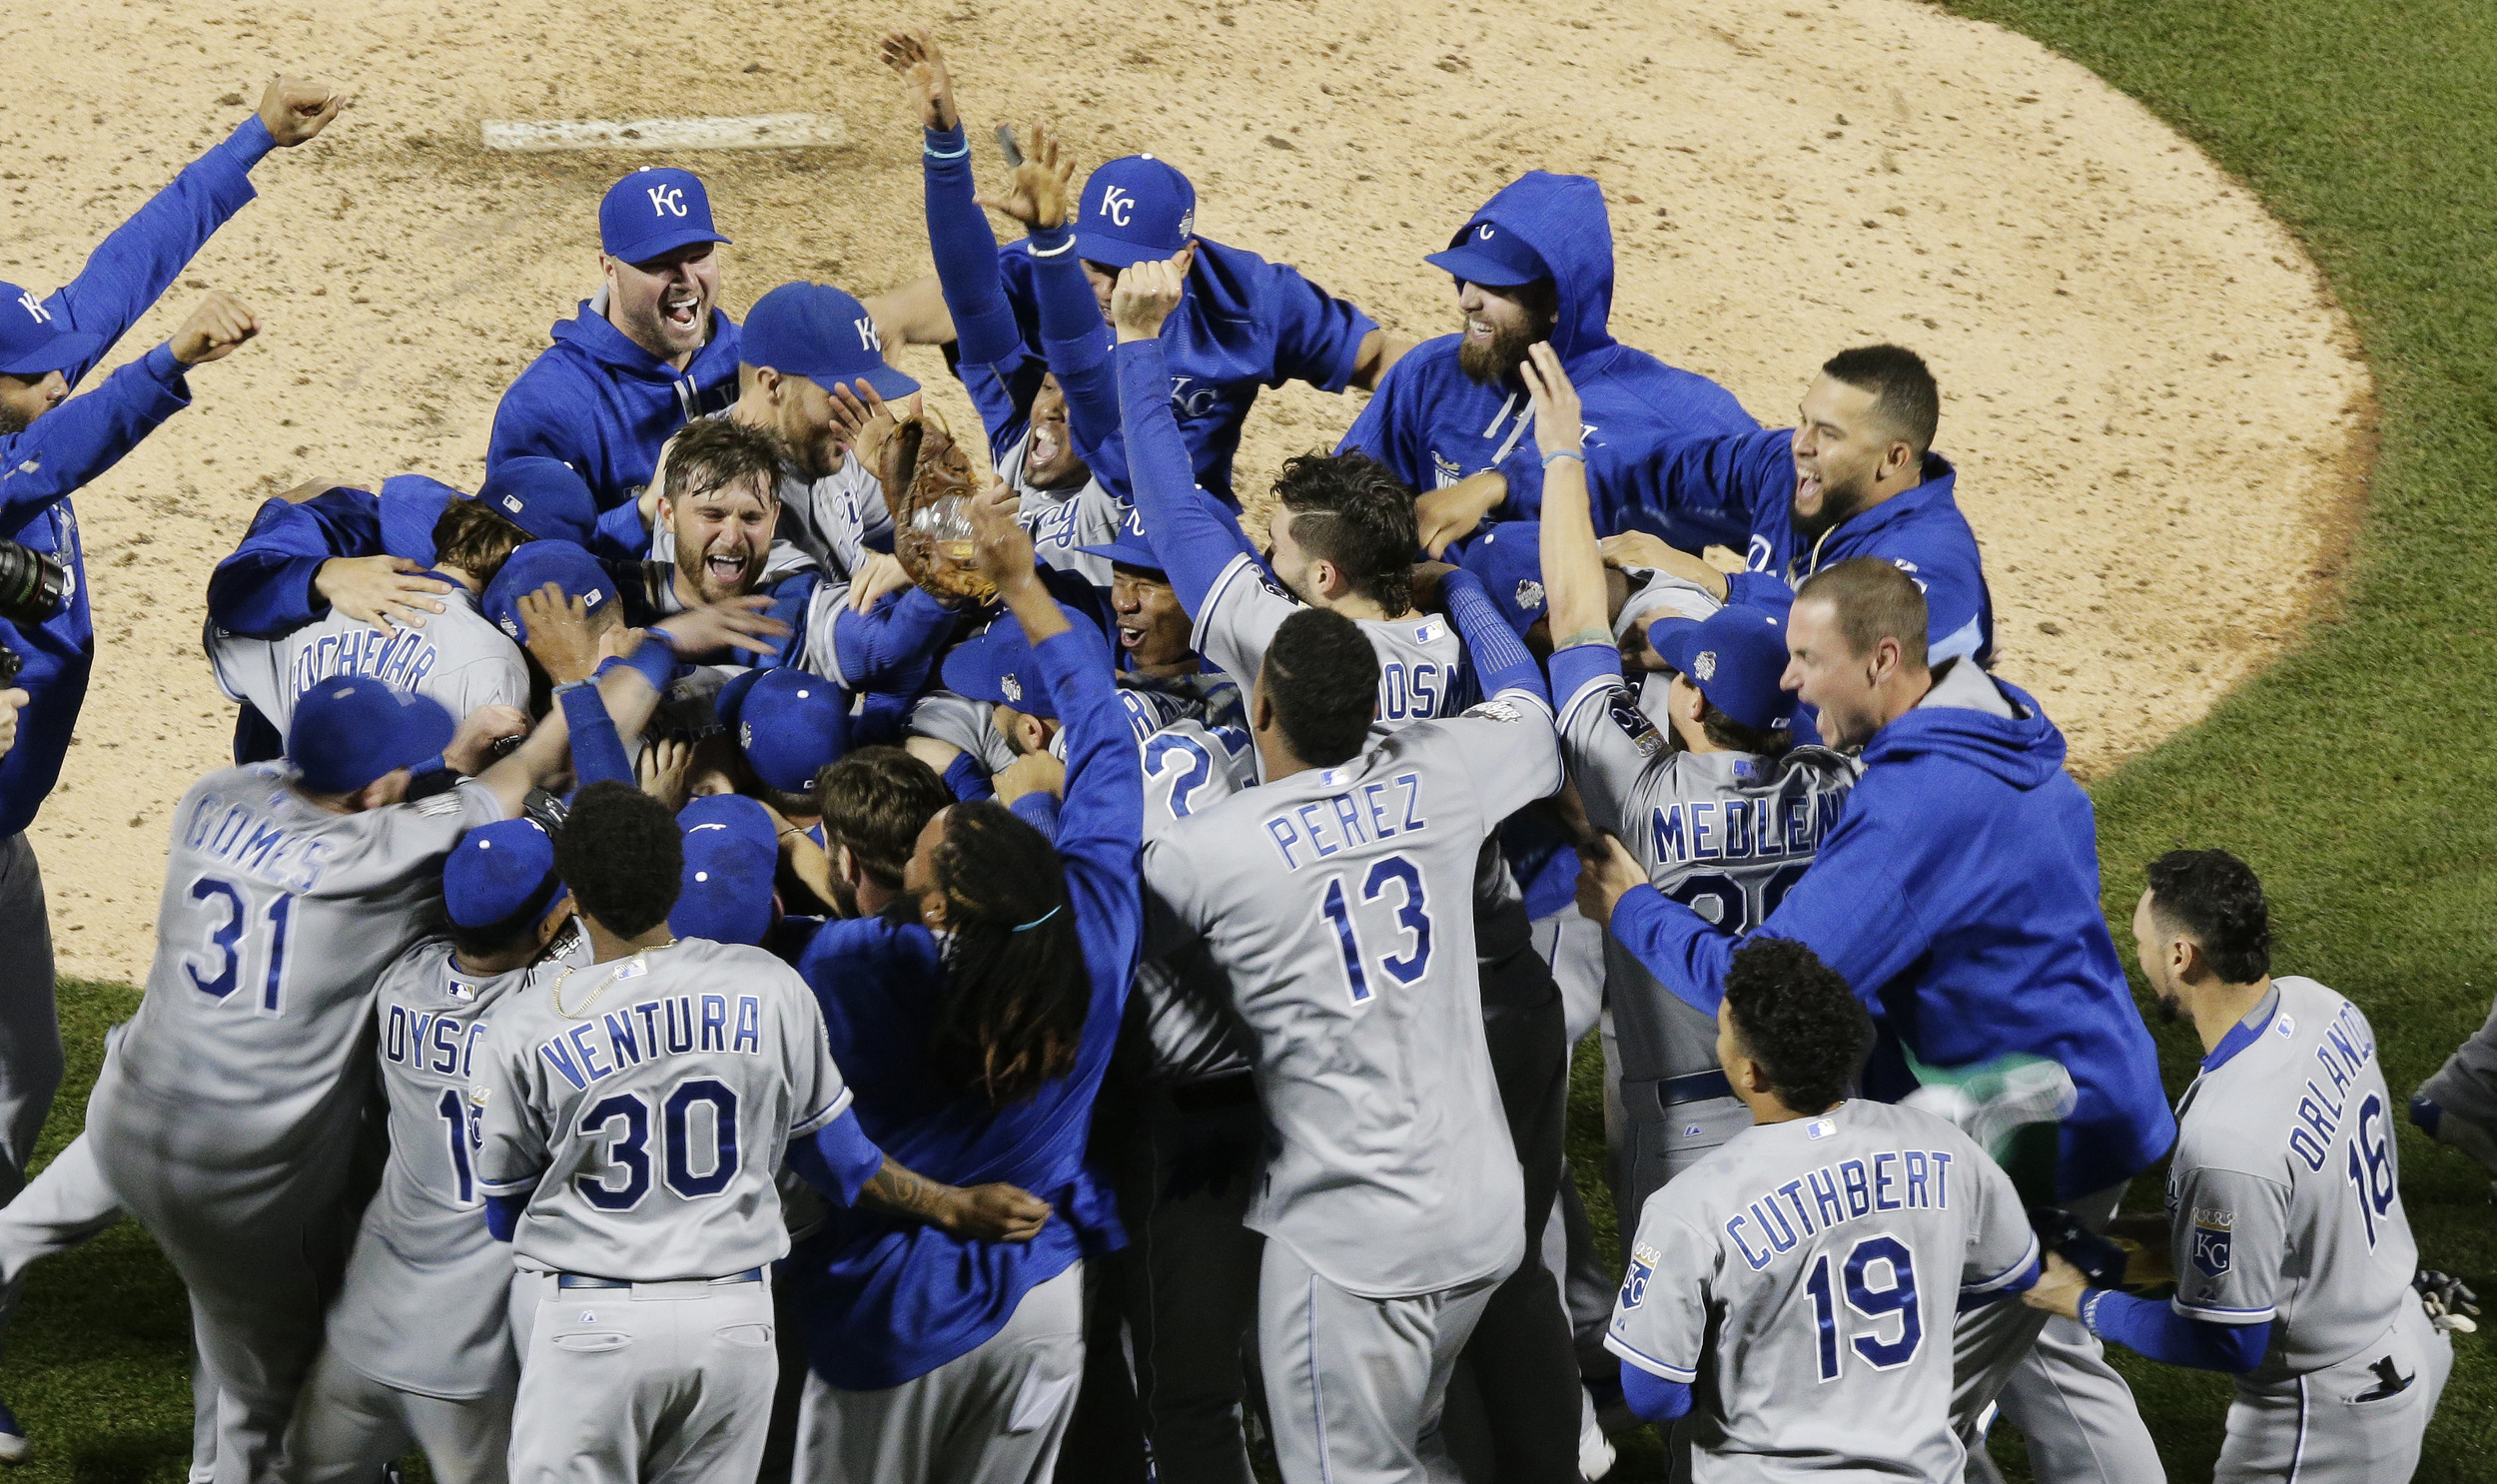 Member of the Kansas City  Royals celebrates after Game 5 of the Major League Baseball World Series against the New York Mets Monday, Nov. 2, 2015, in New York. The  Royals won 7-2 to win the series. (AP)